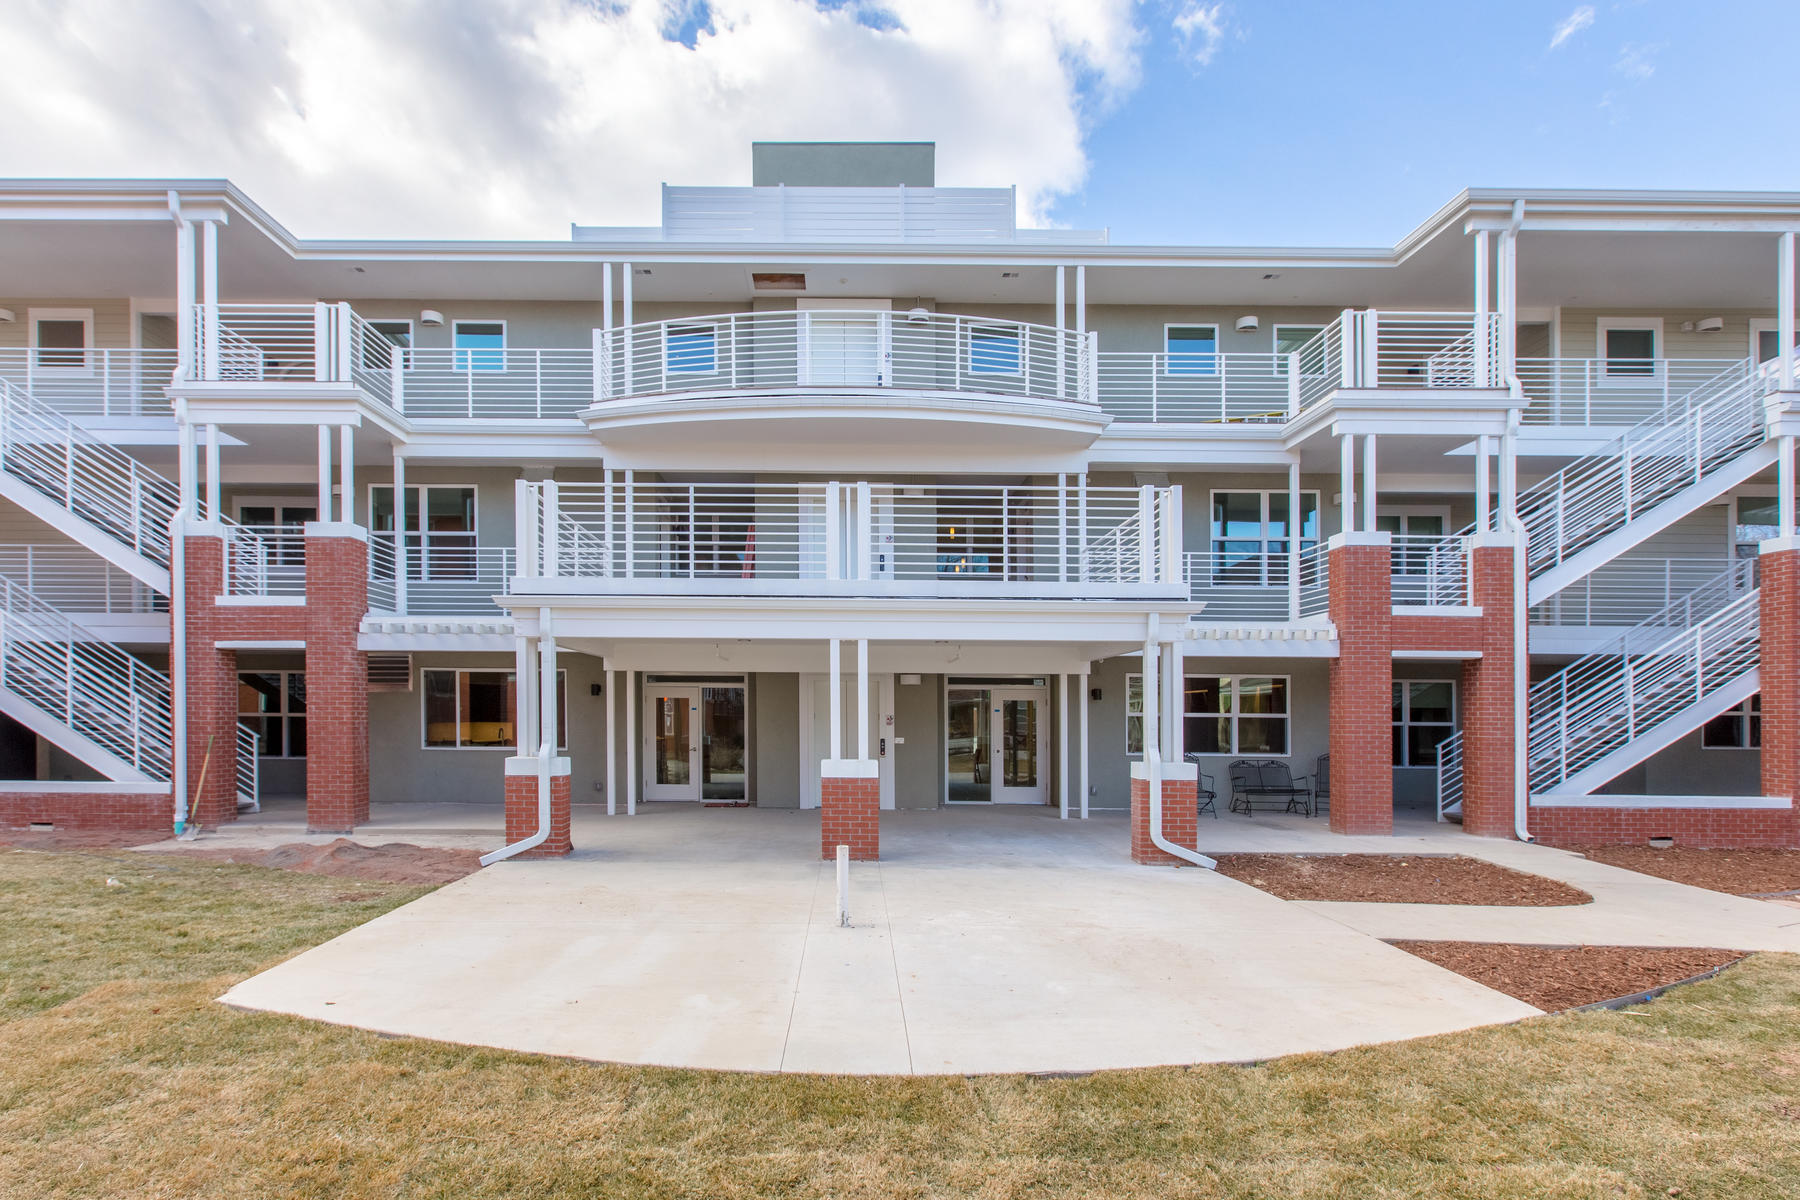 Single Family Home for Active at Washington Village Condo 2930 Broadway St 204 Boulder, Colorado 80304 United States